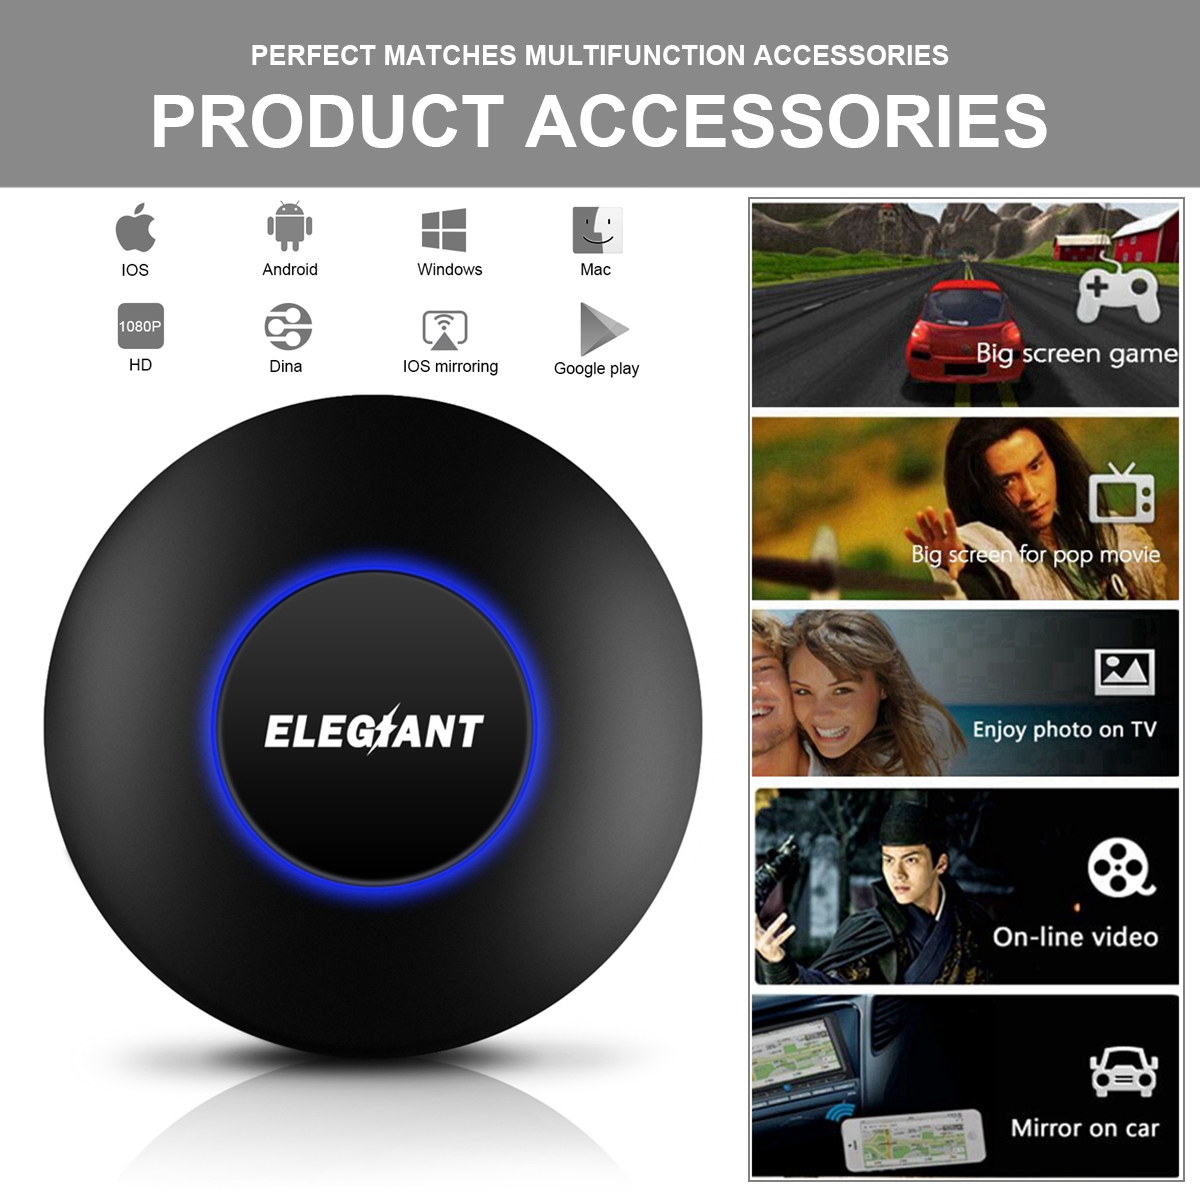 Wireless WiFi Display Dongle, ELEGIANT 1080P Mini Display Receiver HD AV Dual Output Miracast DLNA Air play Converter Adapter for IOS /Android / Windows /